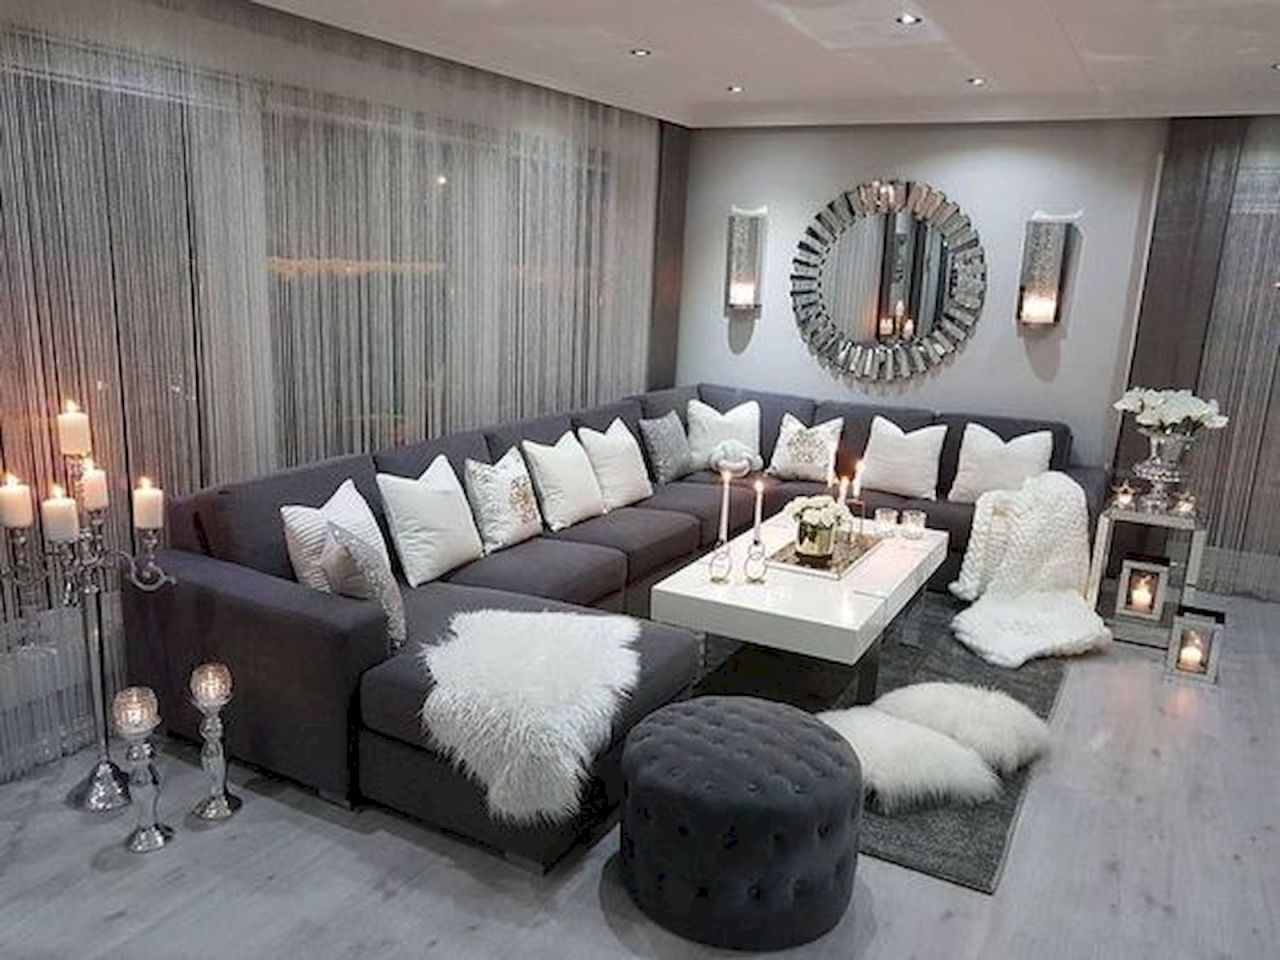 33 Beautiful Grey Living Room Ideas Decorations 47 Worldecor Co Chic Living Room Decor Living Room Grey Living Room Decor Apartment Living room ideas redecorating